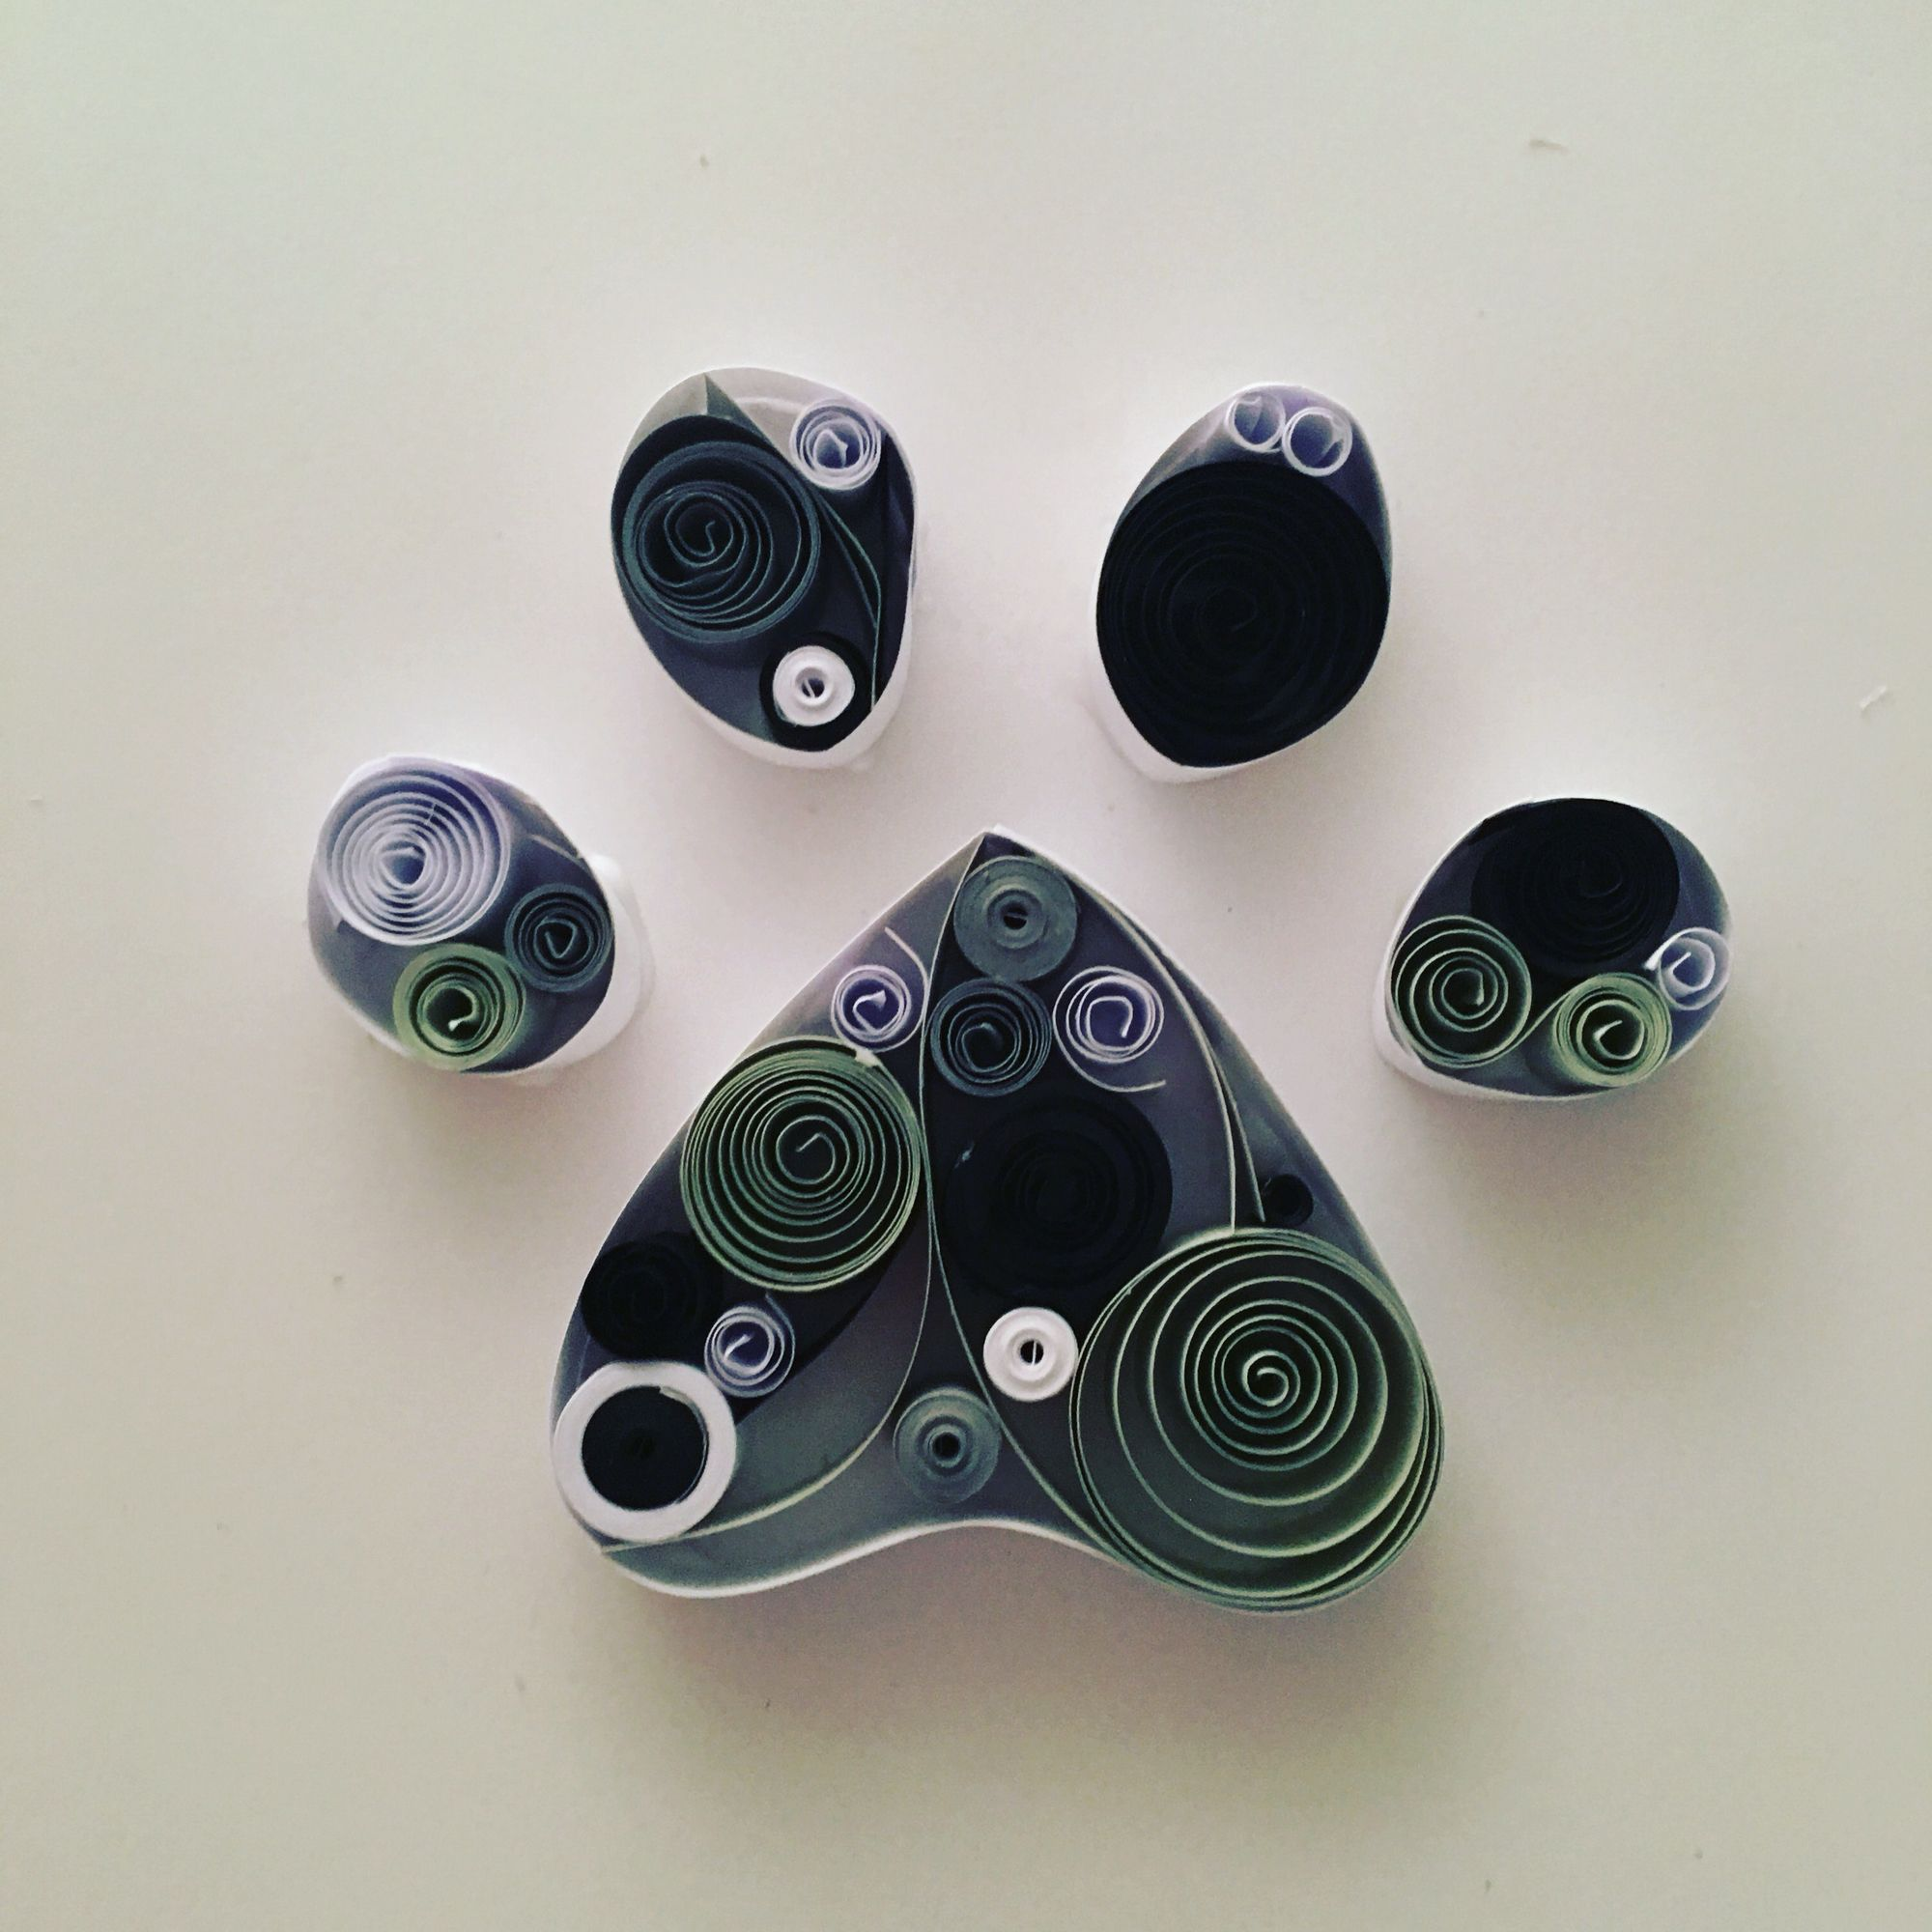 Paw print paper quilling art, perfect for gift or home ...